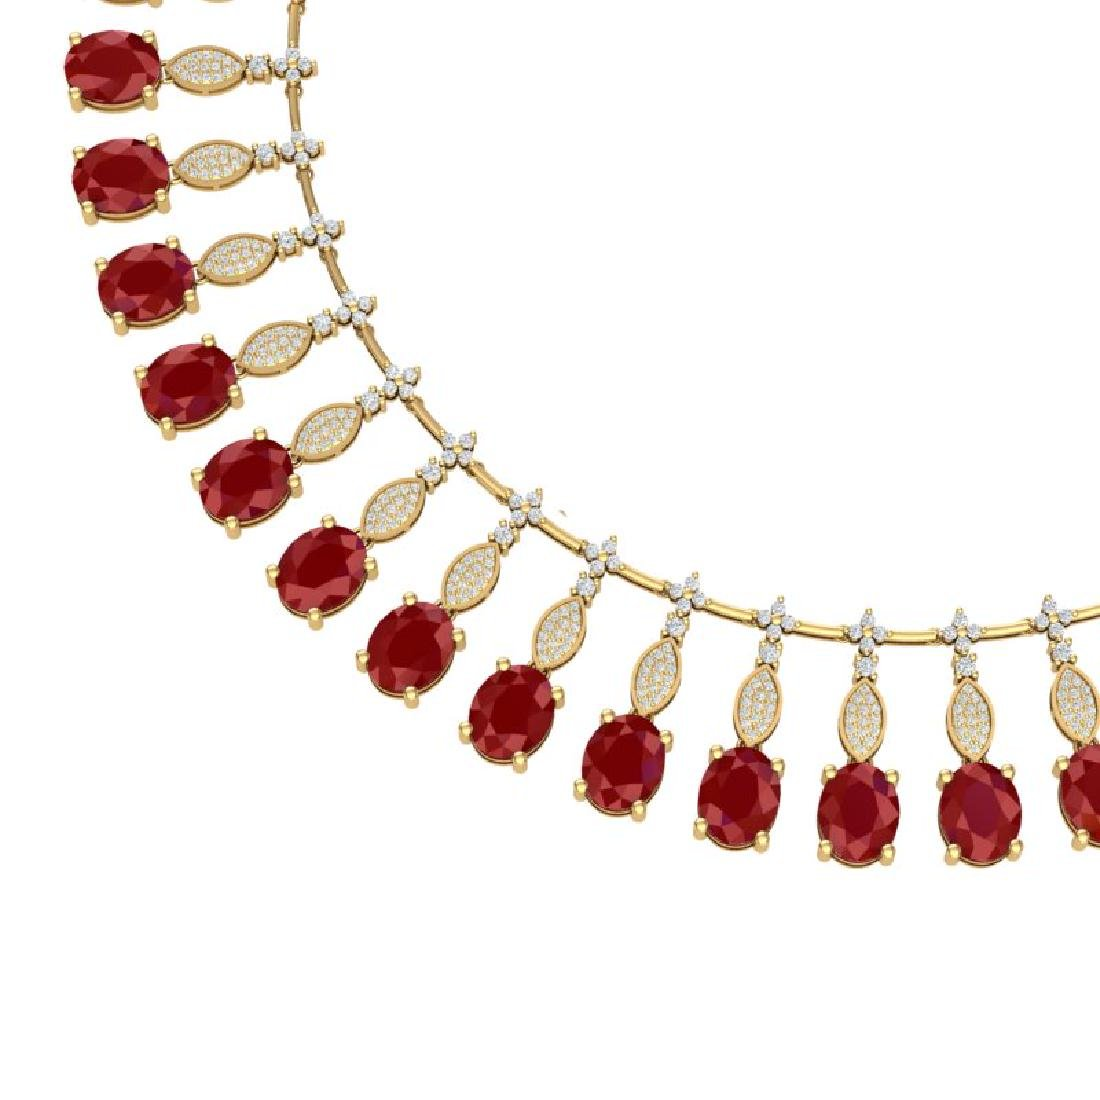 65.62 CTW Royalty Ruby & VS Diamond Necklace 18K Yellow